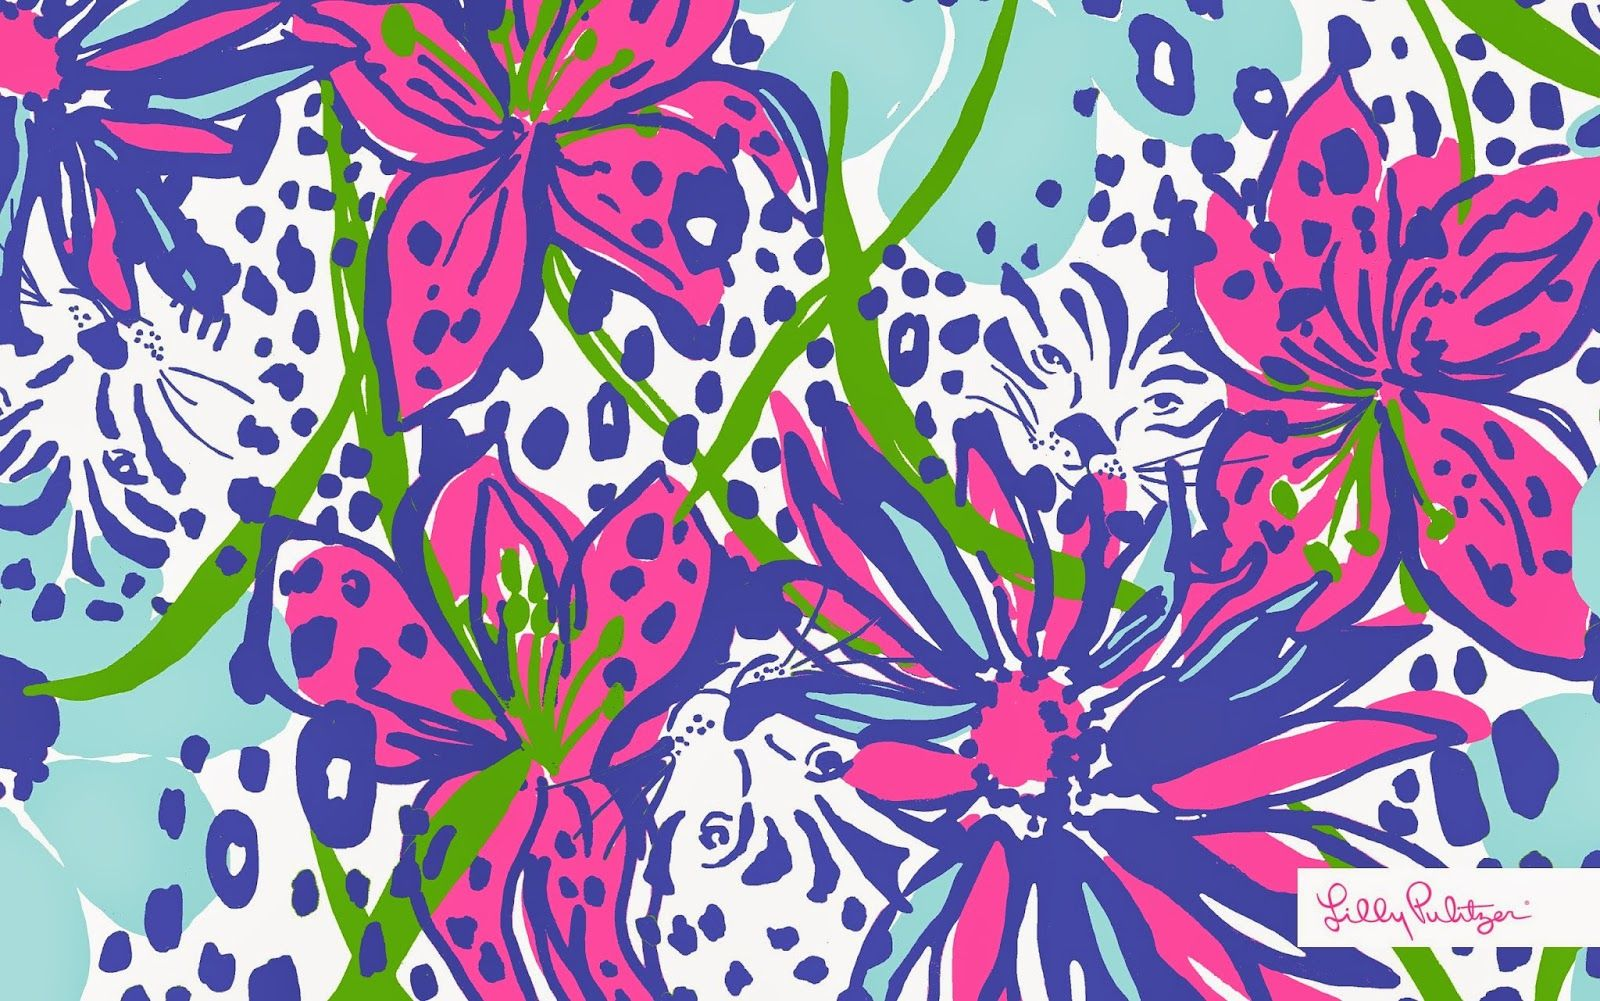 Pin By Sara Brown On Wallpaper Backgrounds Lily Pulitzer Wallpaper Pink Wallpaper Iphone Laptop Wallpaper Desktop Wallpapers